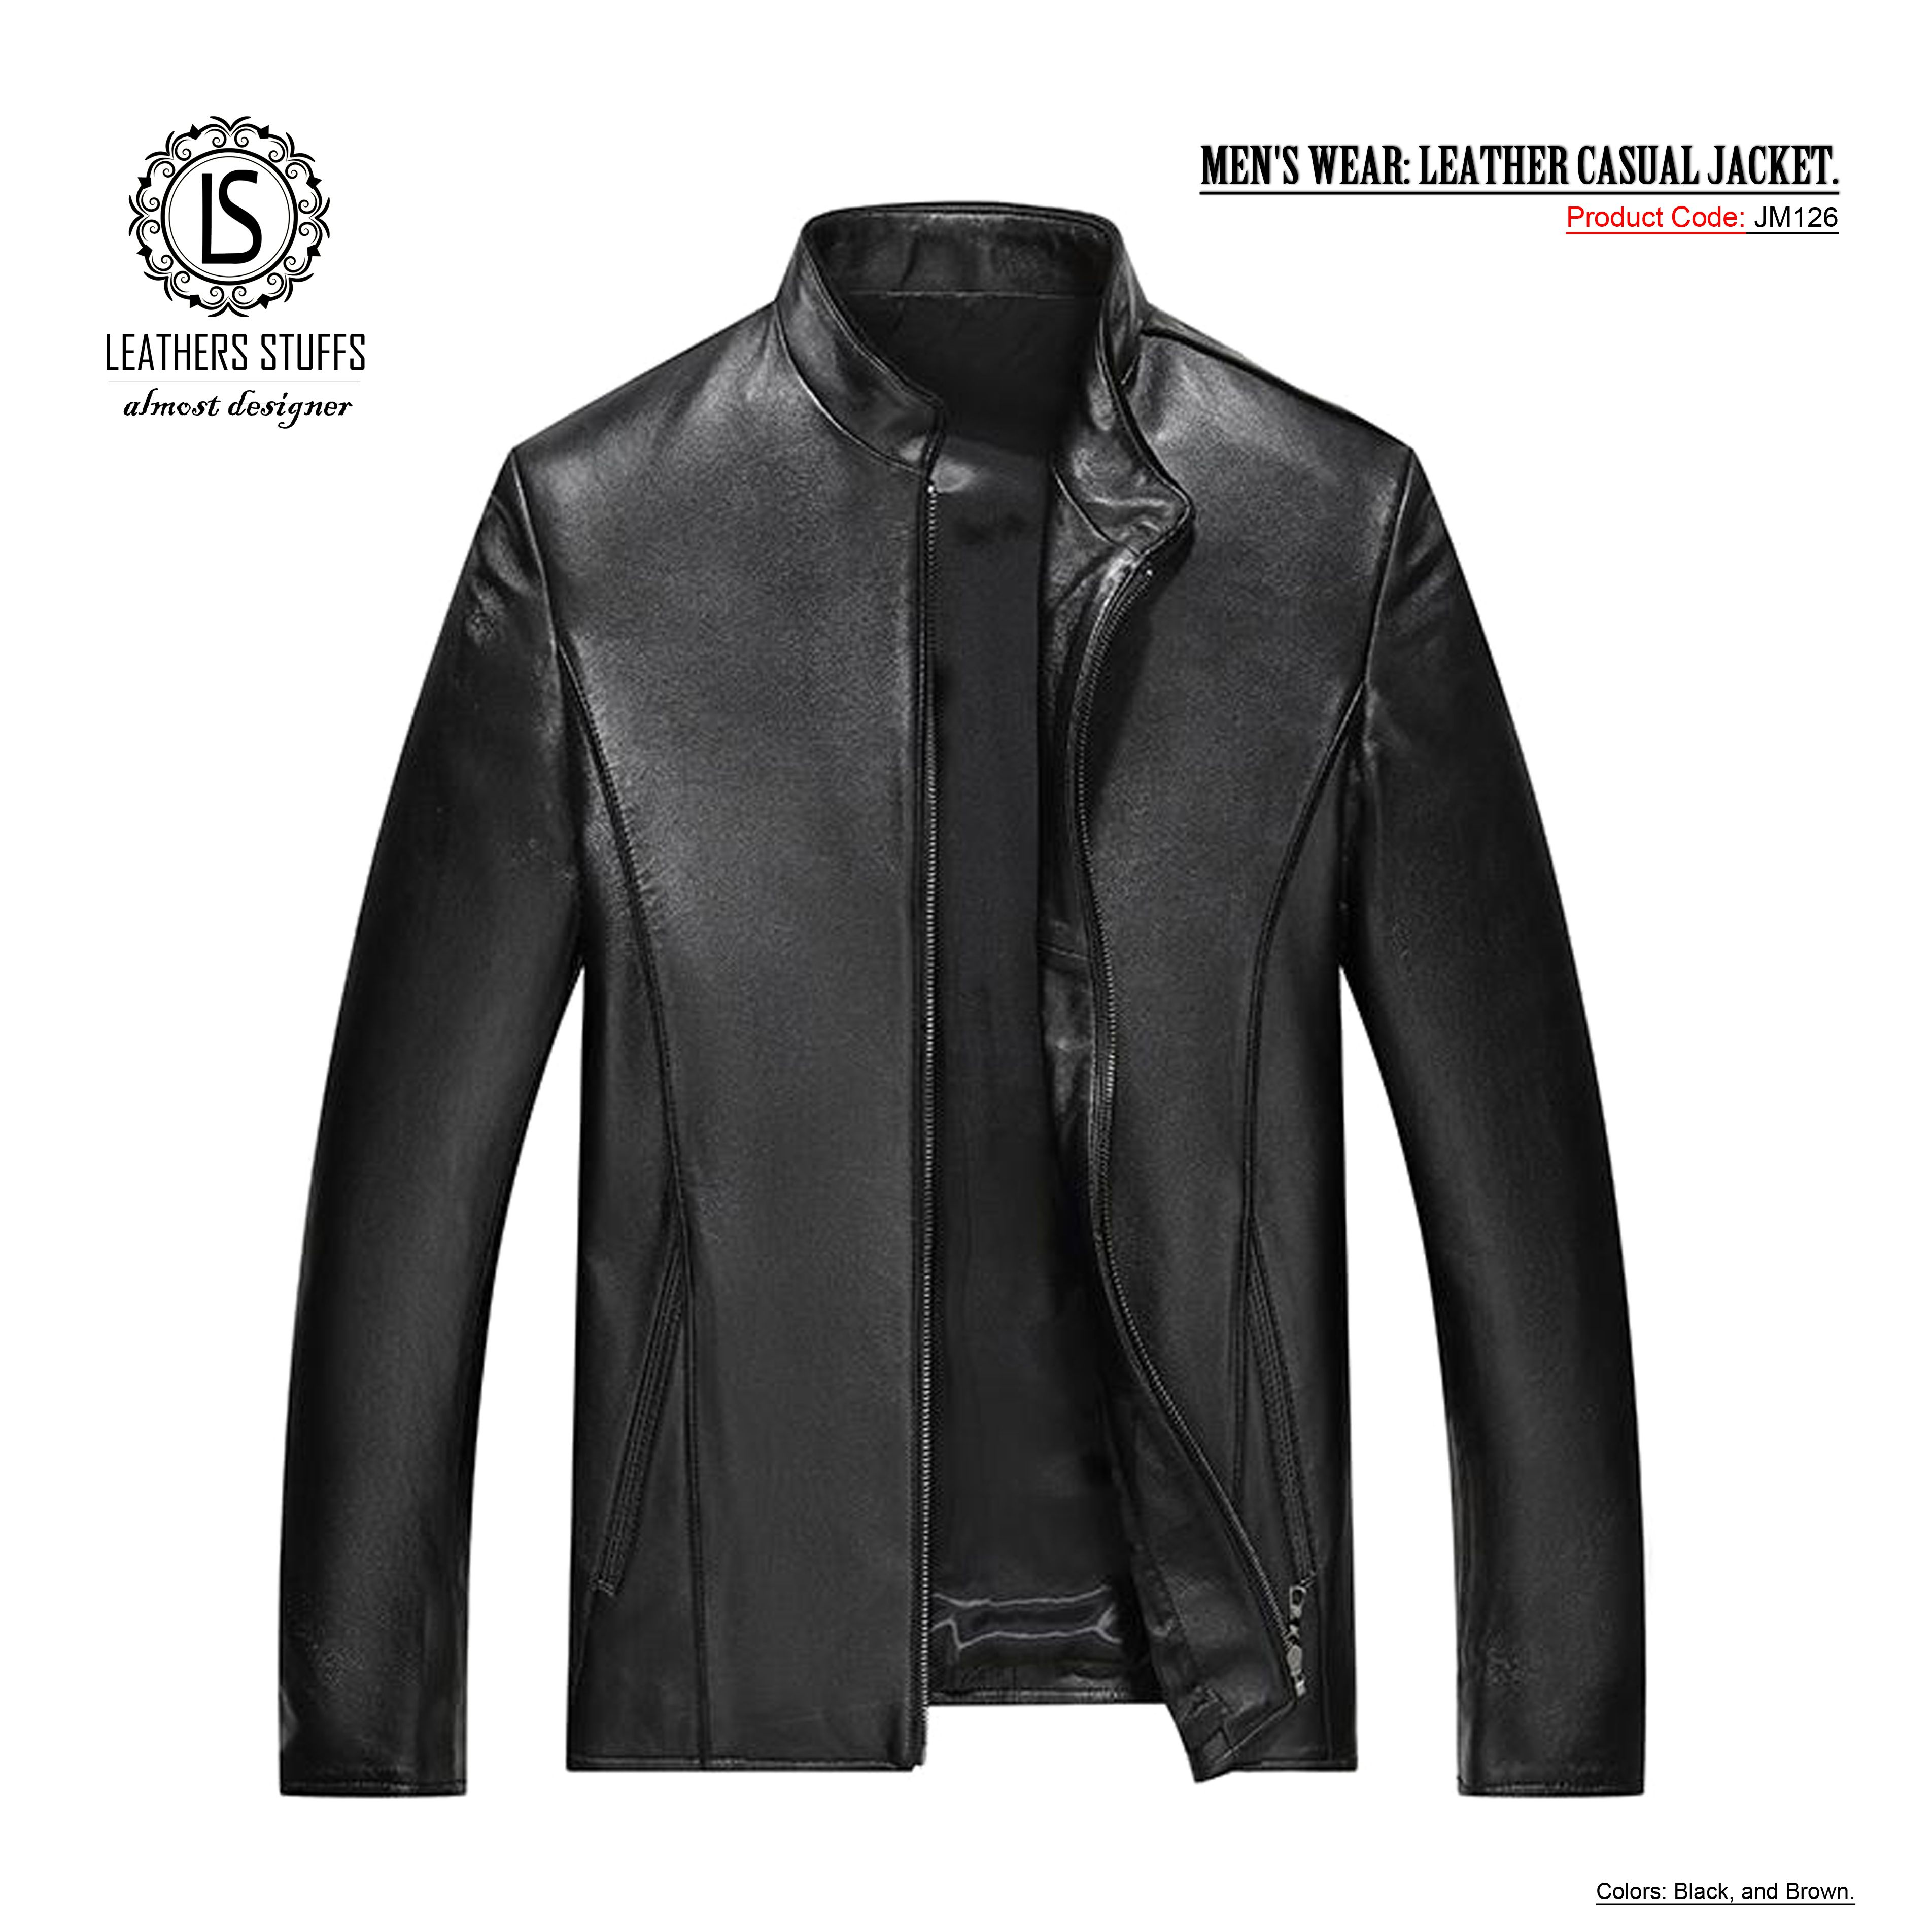 a0f05a25d MEN'S WEAR: LEATHER CASUAL JACKET. Colors: Black and Brown. Size: XS ...